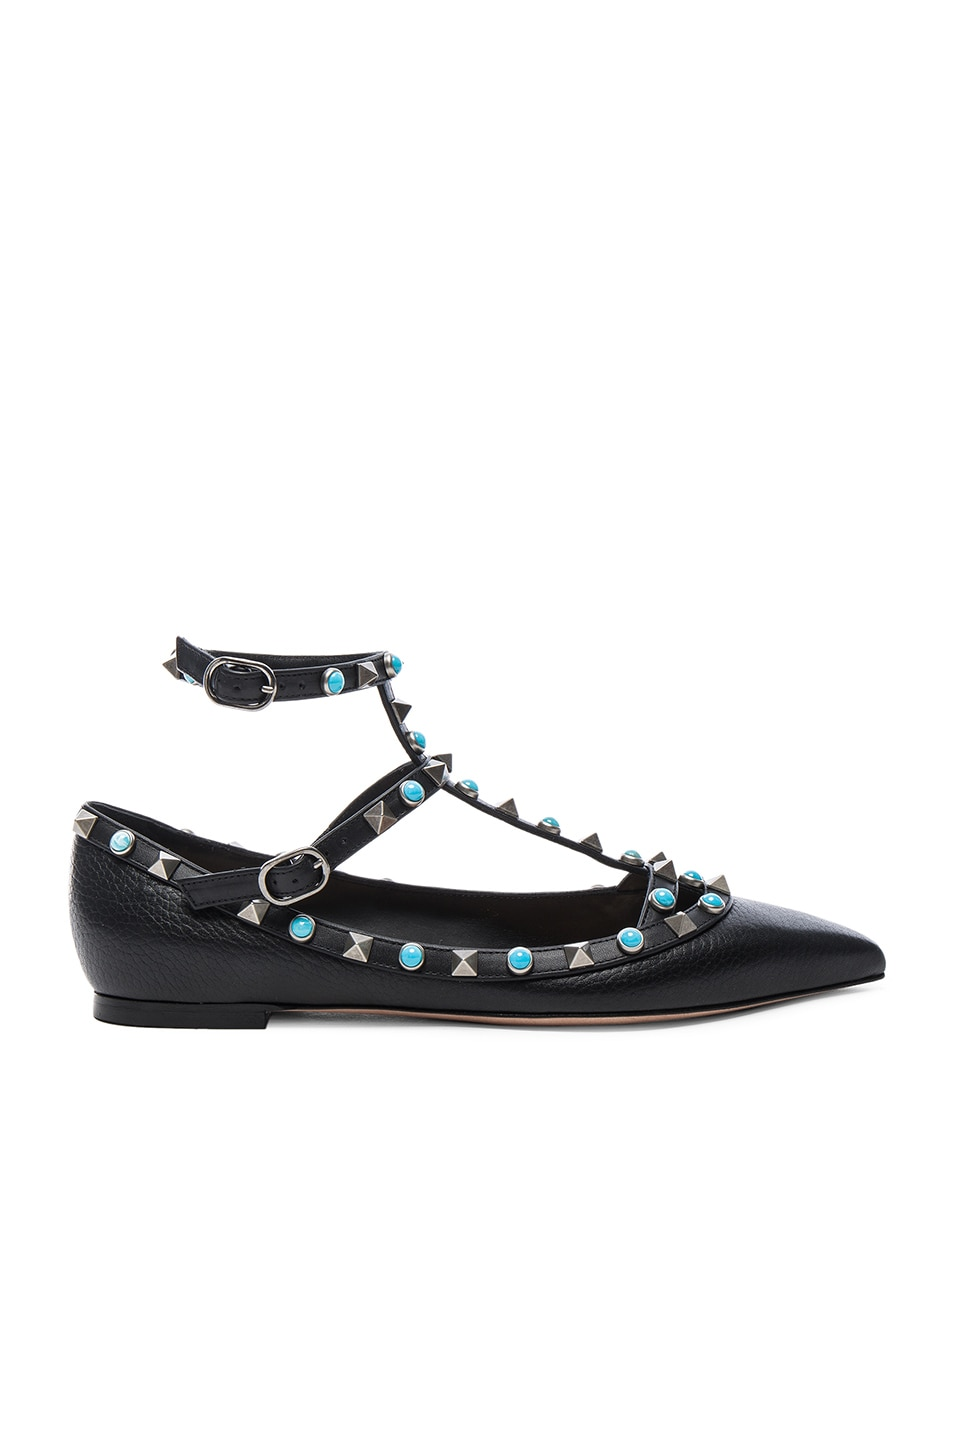 b1b4a458a155e Image 1 of Valentino Rockstud Leather Rolling Cage Flats in Black